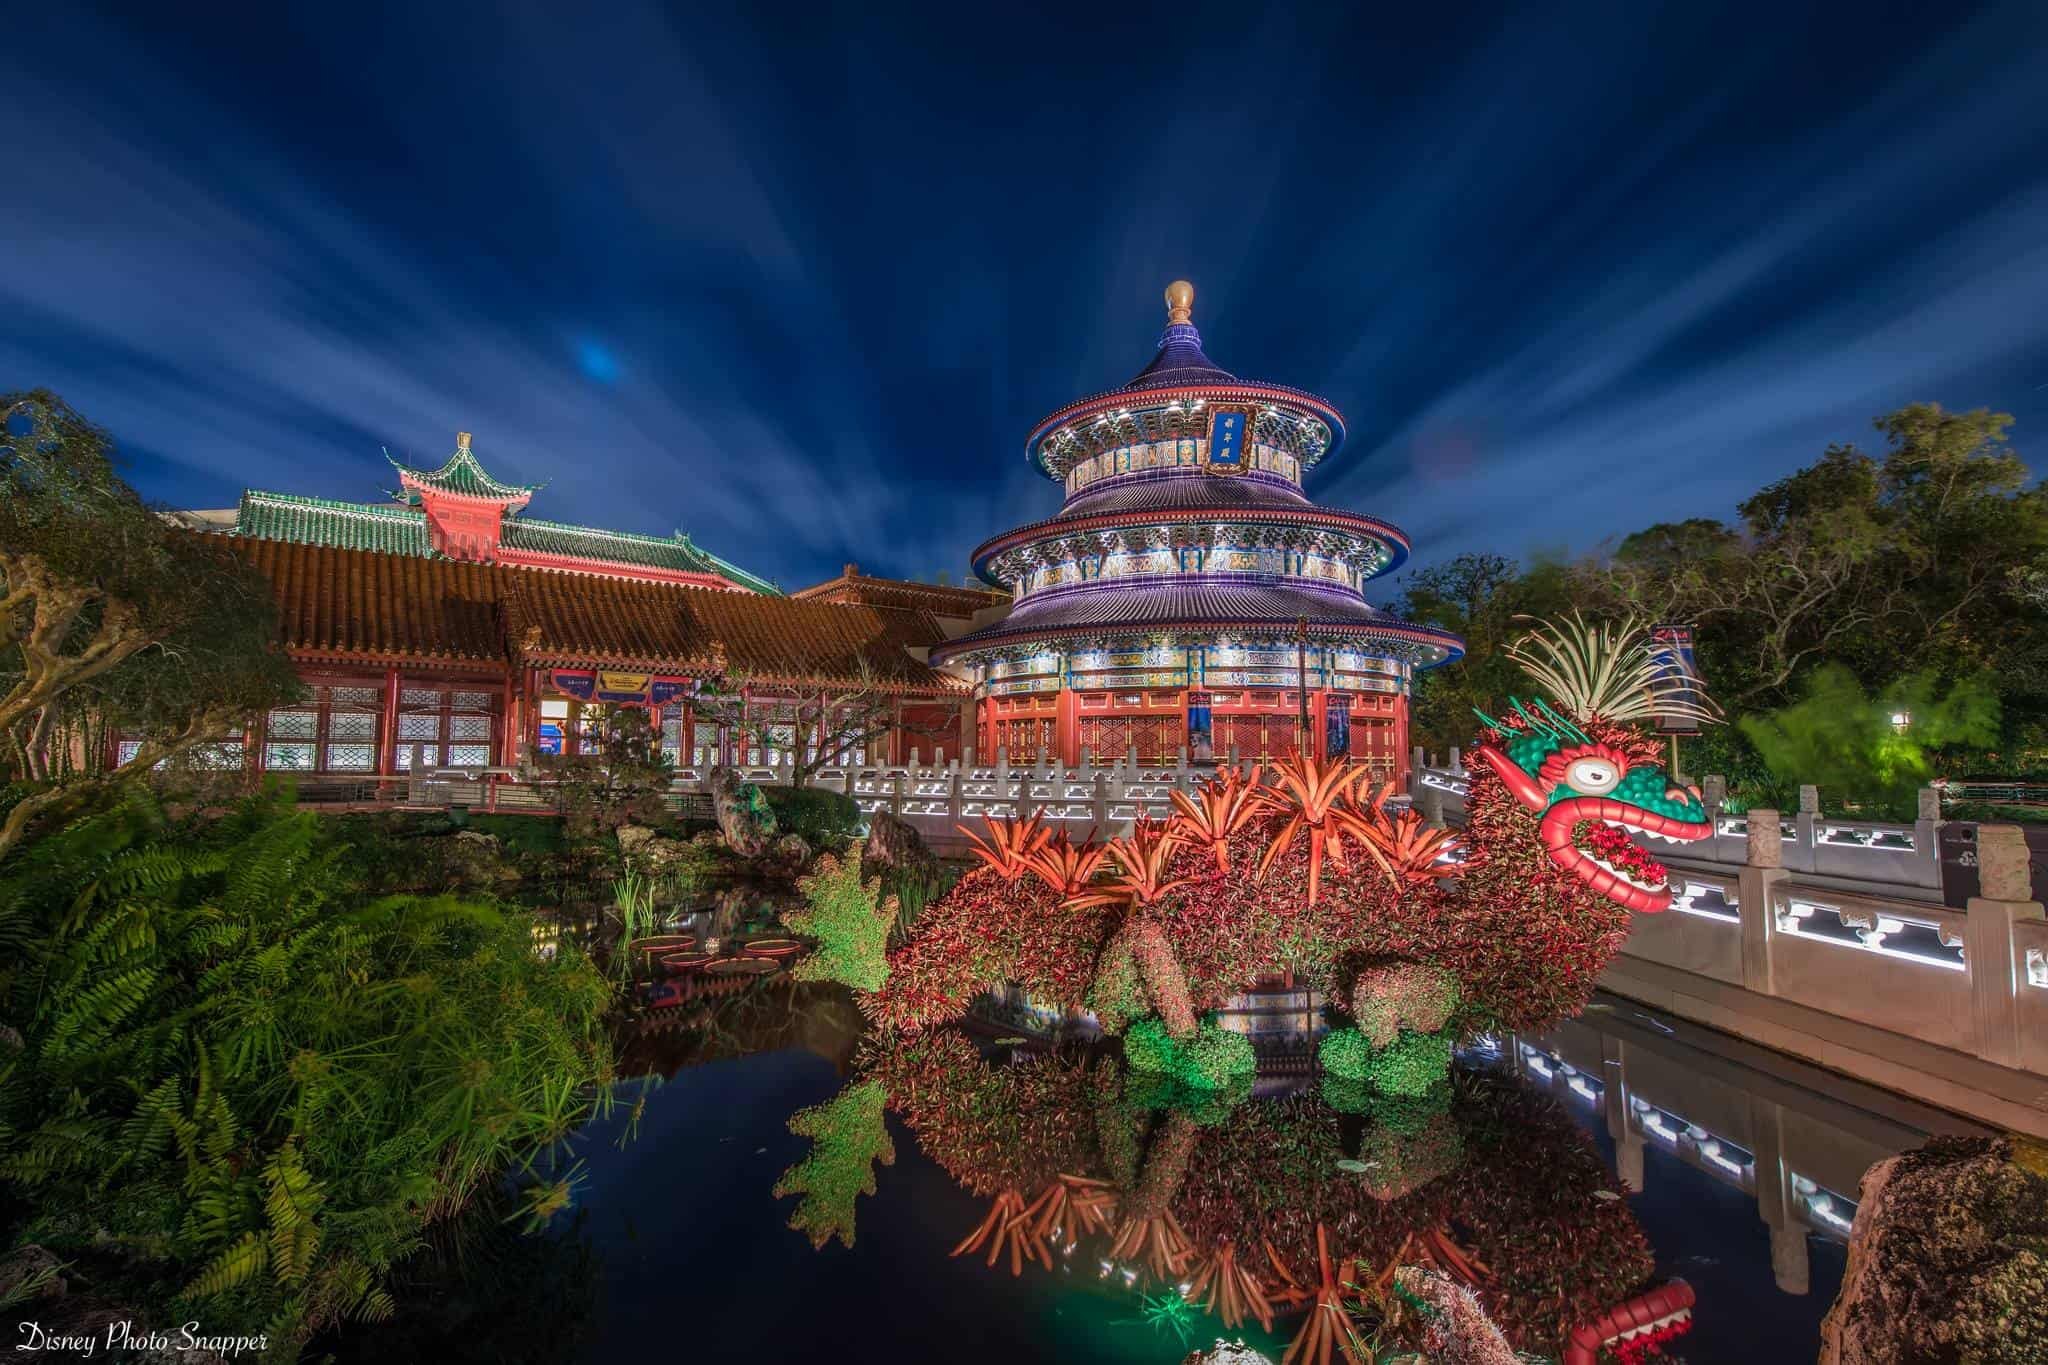 China Pavillion in Disney's Epcot